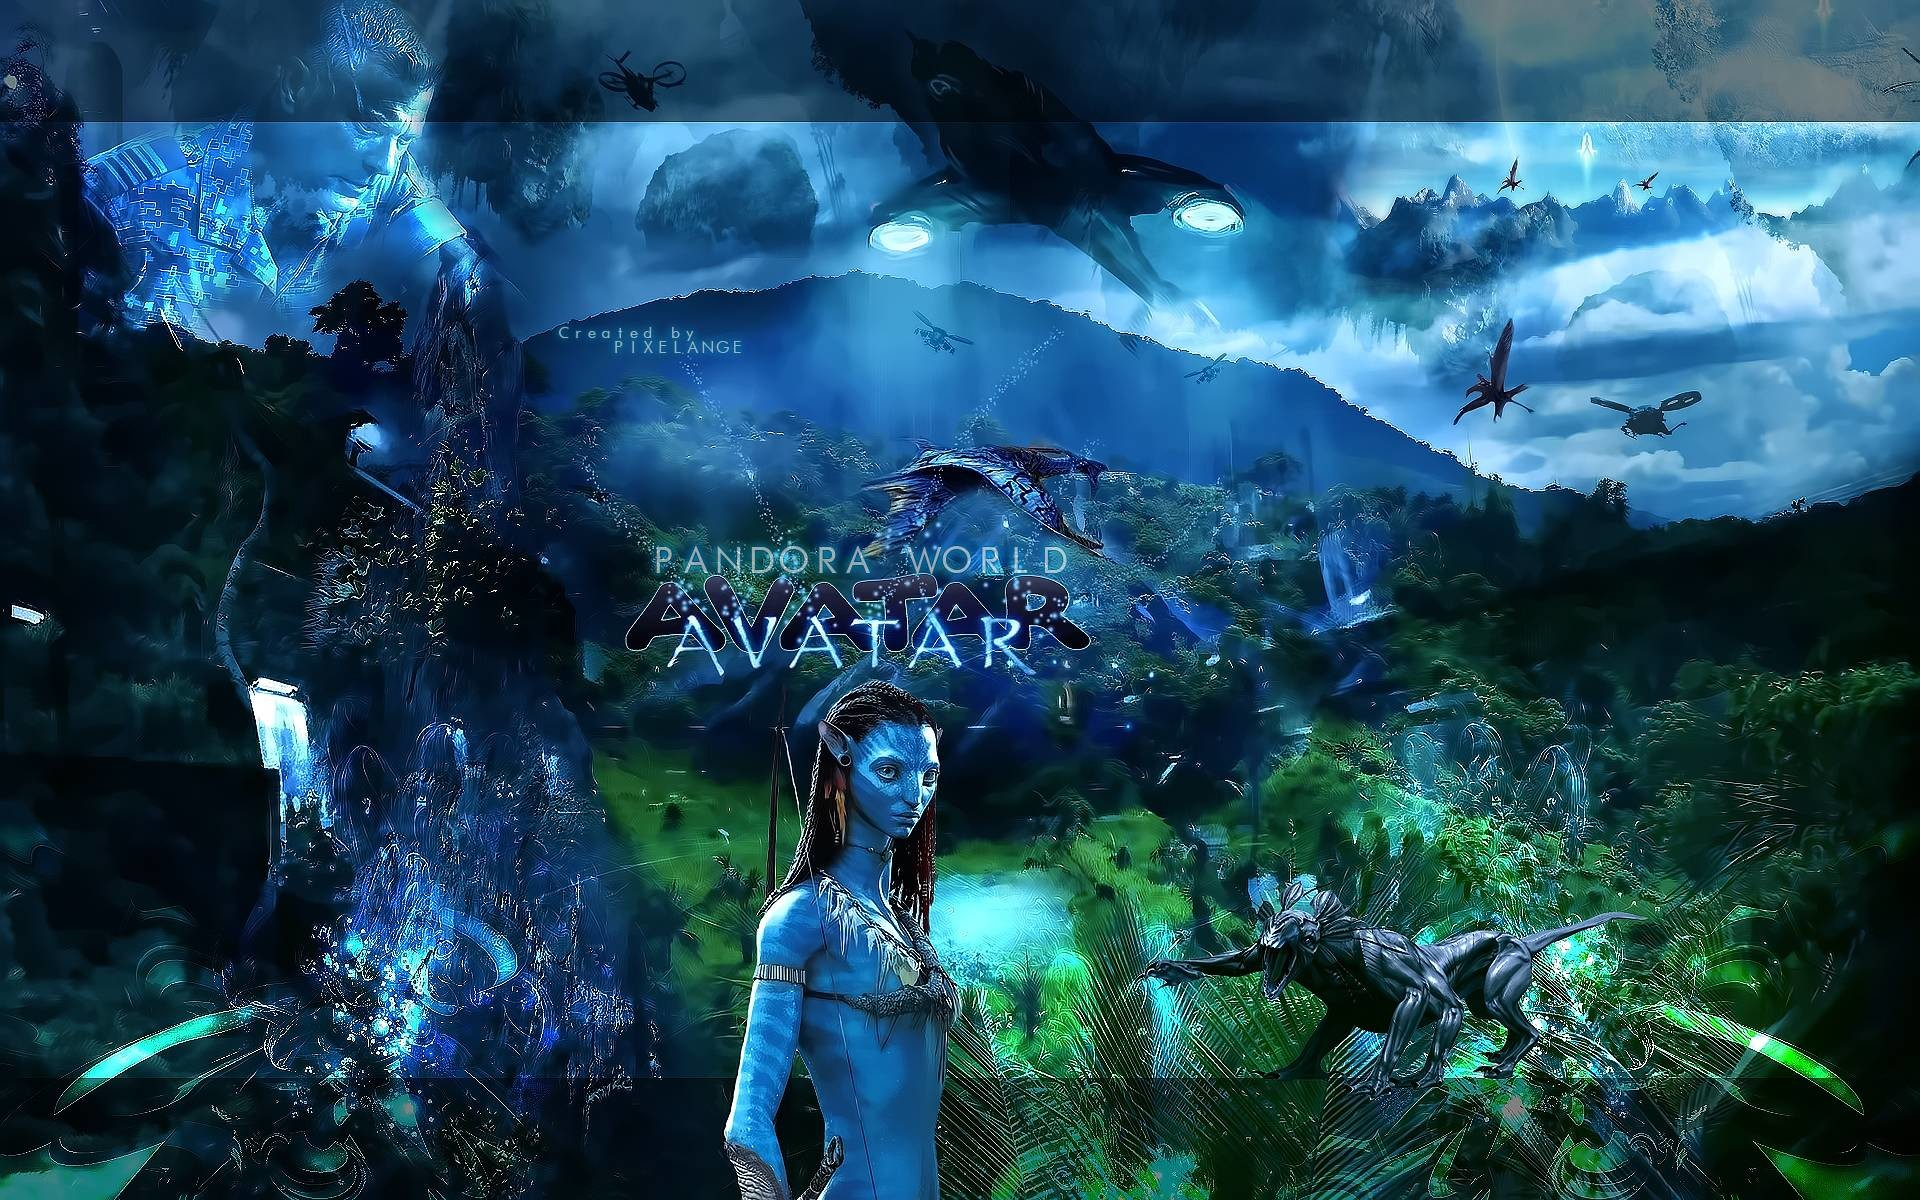 1920x1200 Avatar Movie HD Wallpaper | Wallpapers | Pinterest | Avatar movie and Hd  wallpaper